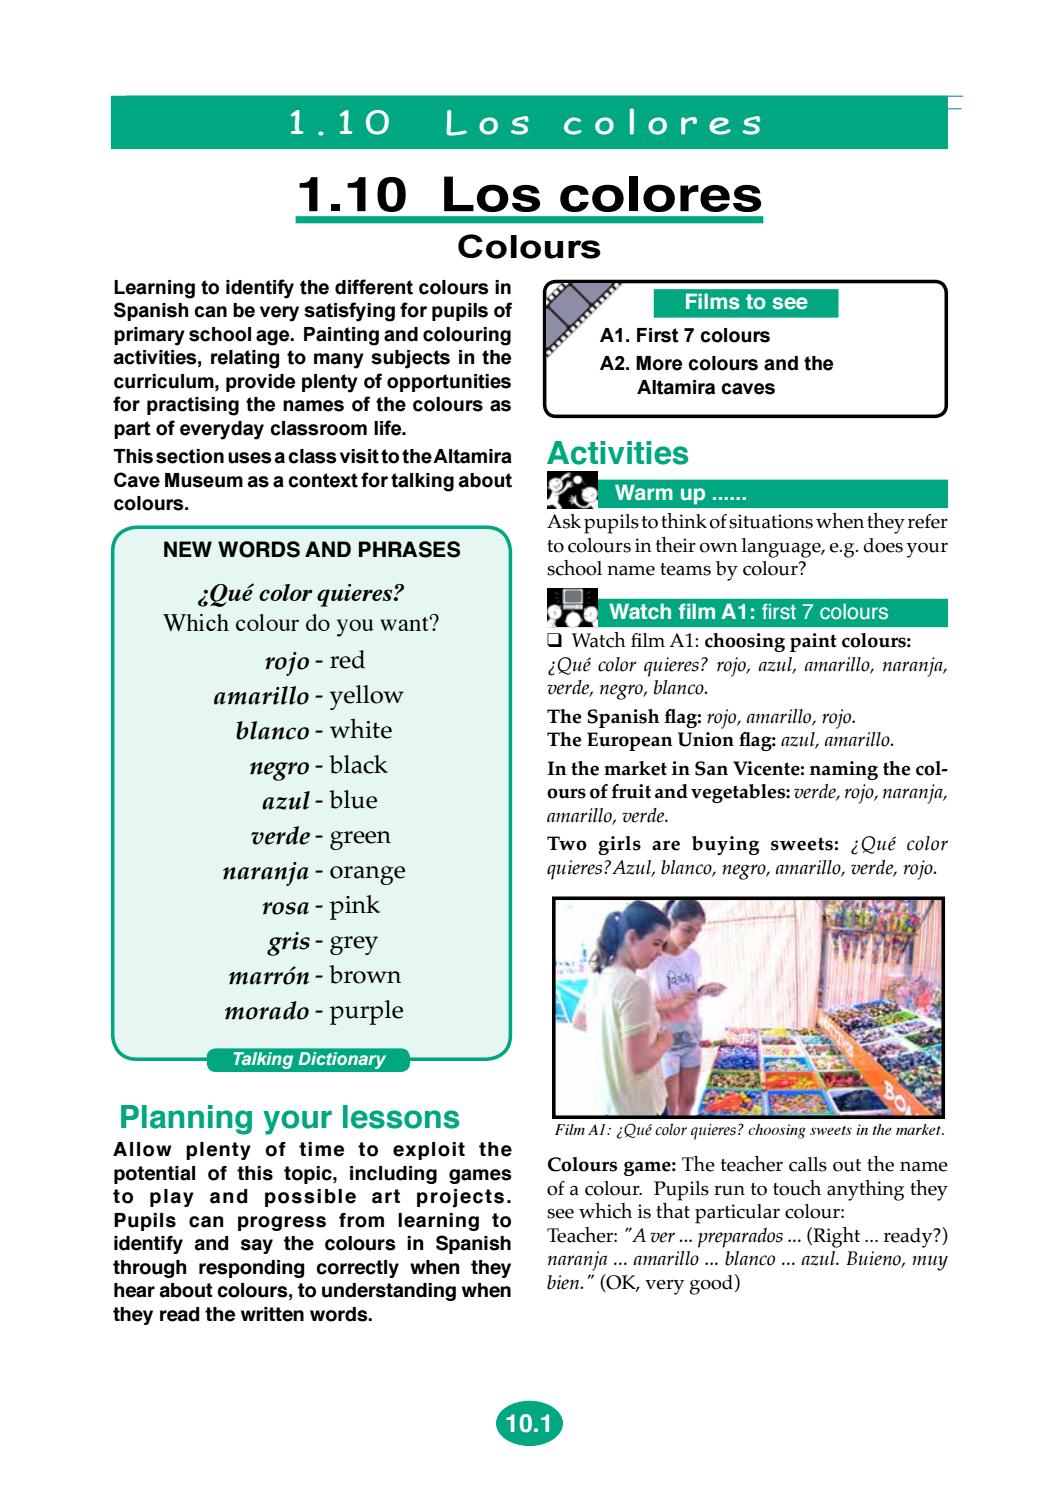 S110 Colours V11 By Early Start Languages Issuu